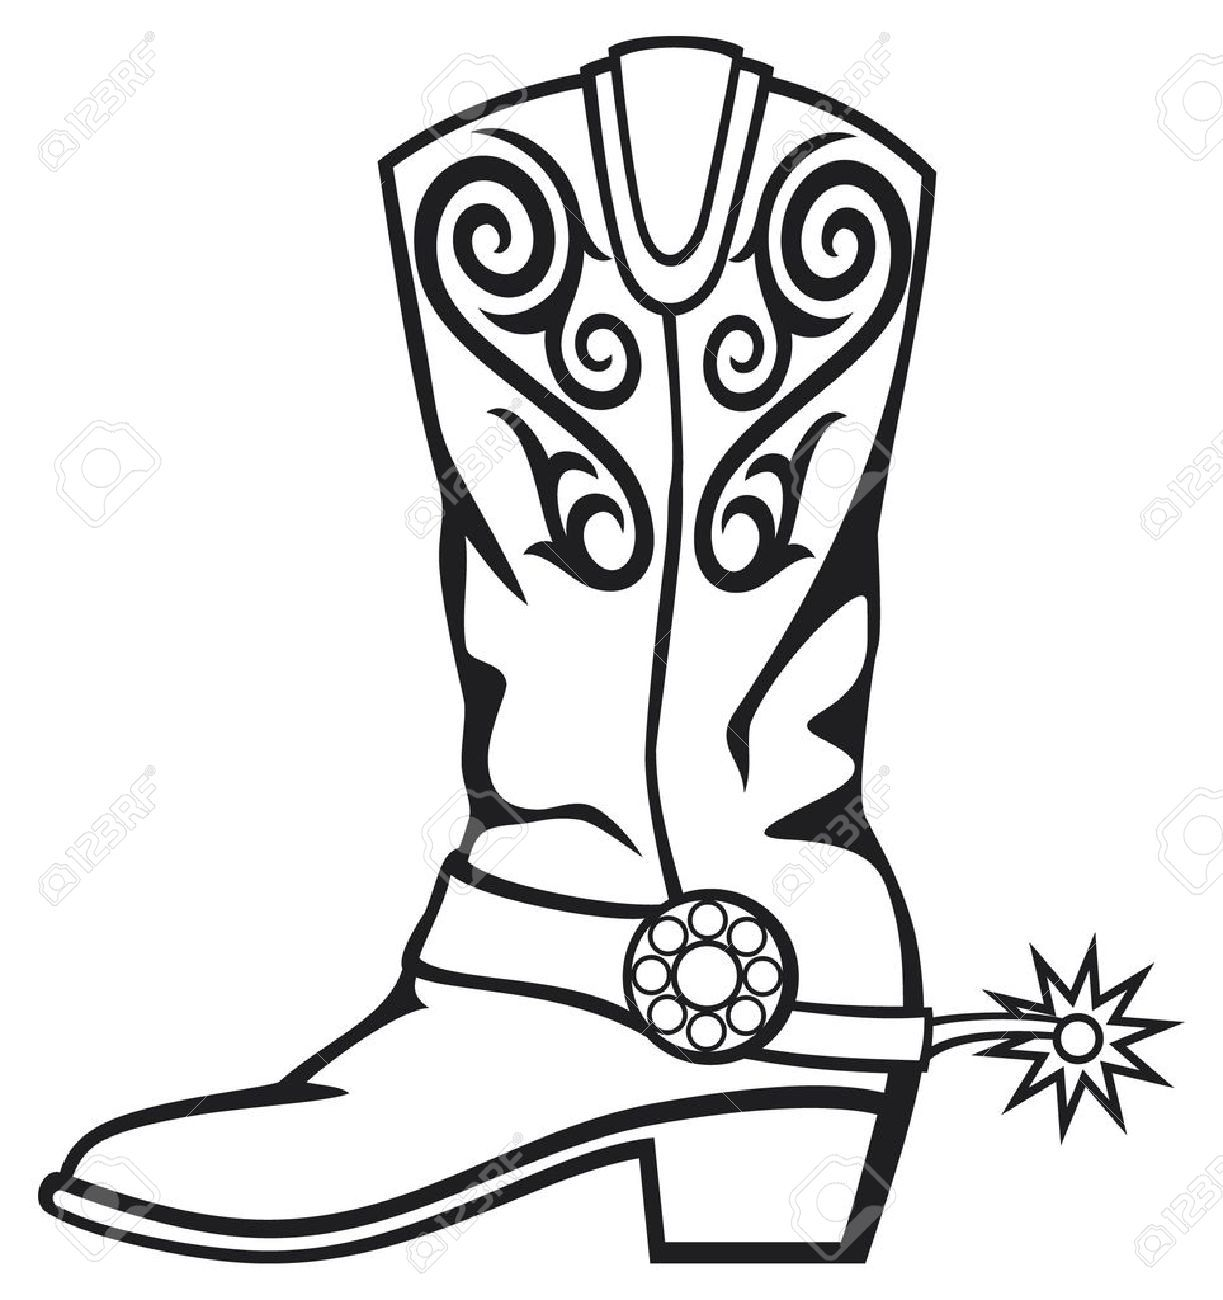 Boot clipart sketch. Combat boots drawing free